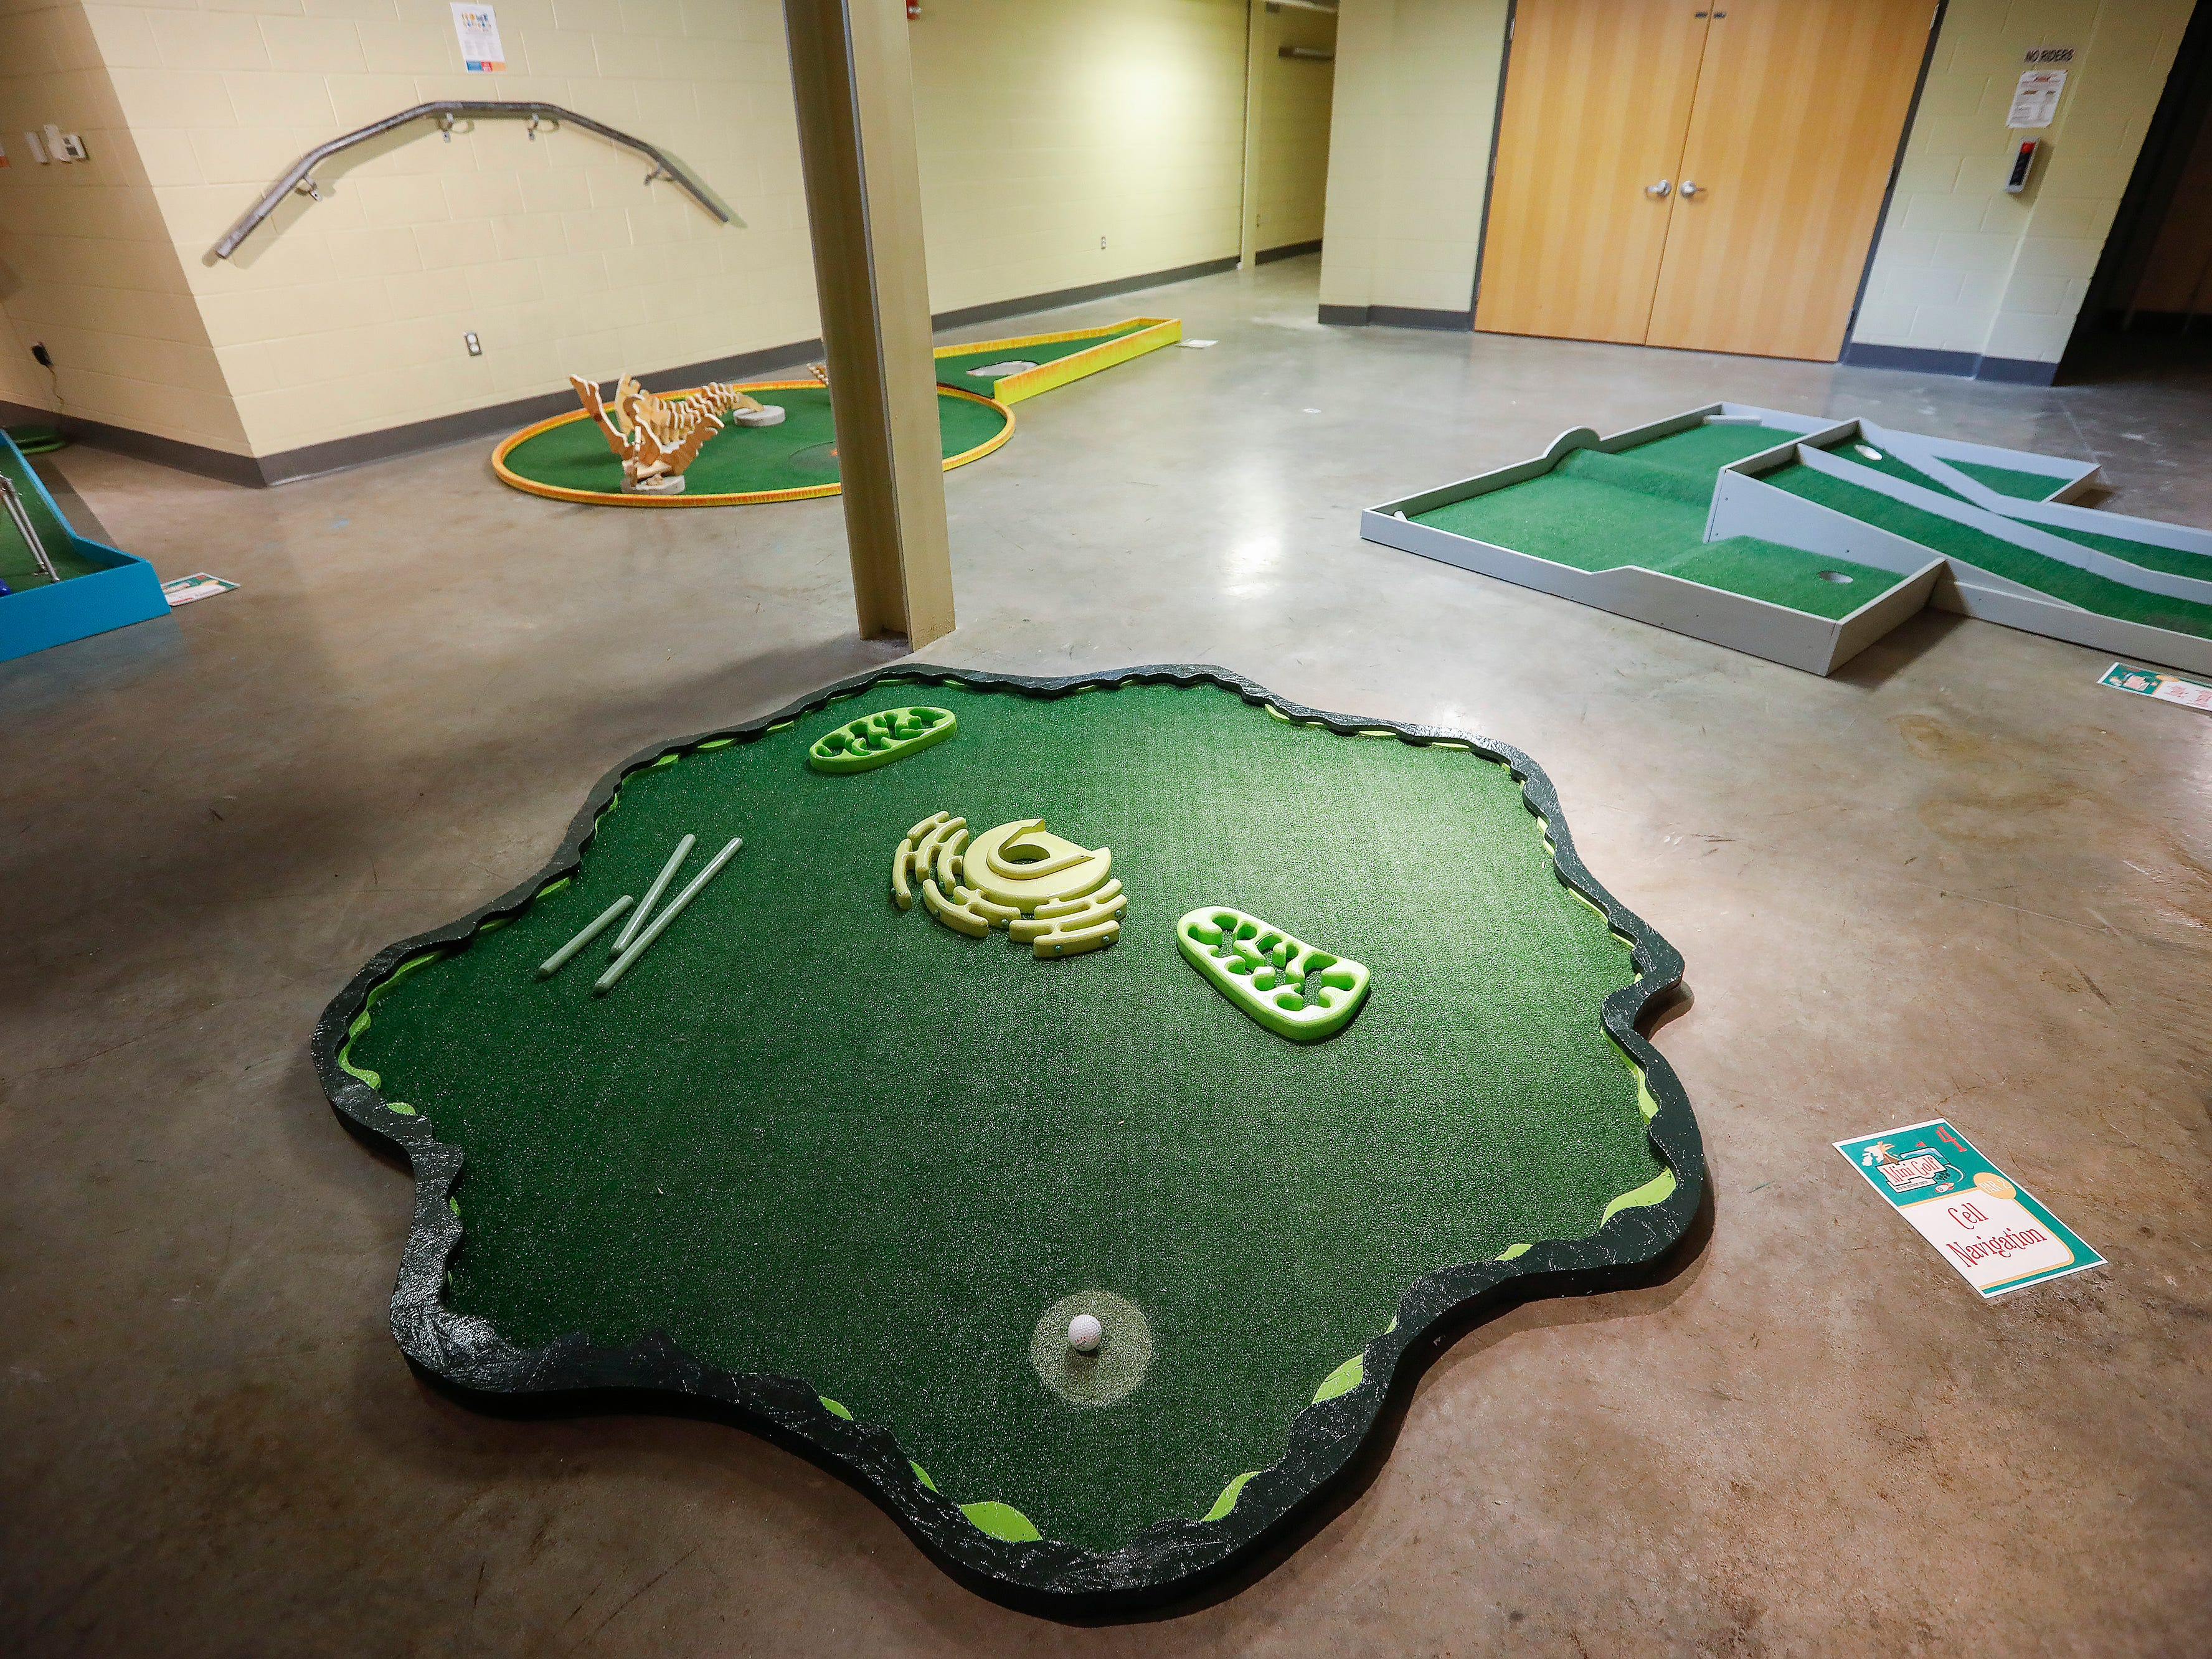 A new 9-hole indoor miniature golf course at the Discovery Center will open to the public on Sunday, March 31, 2019.